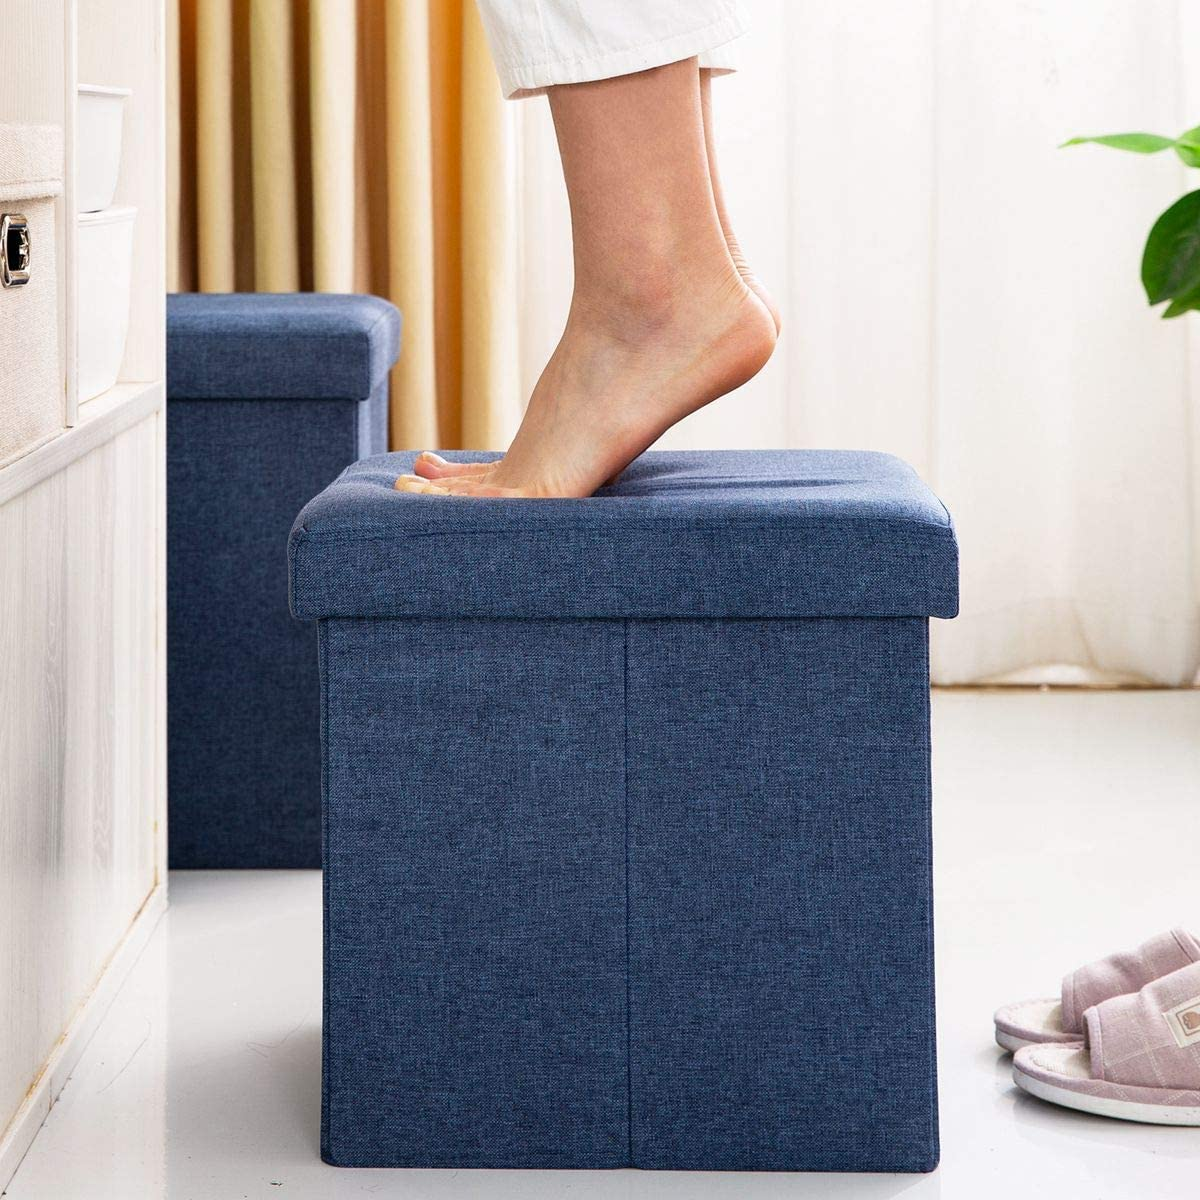 FHSQX Folding Storage Ottoman Cube Versatile Cube Footrest Stool Seat for Bedroom Living Room Linen Storage Seat with Memory Foam 13.7x13.7x13.7Inch